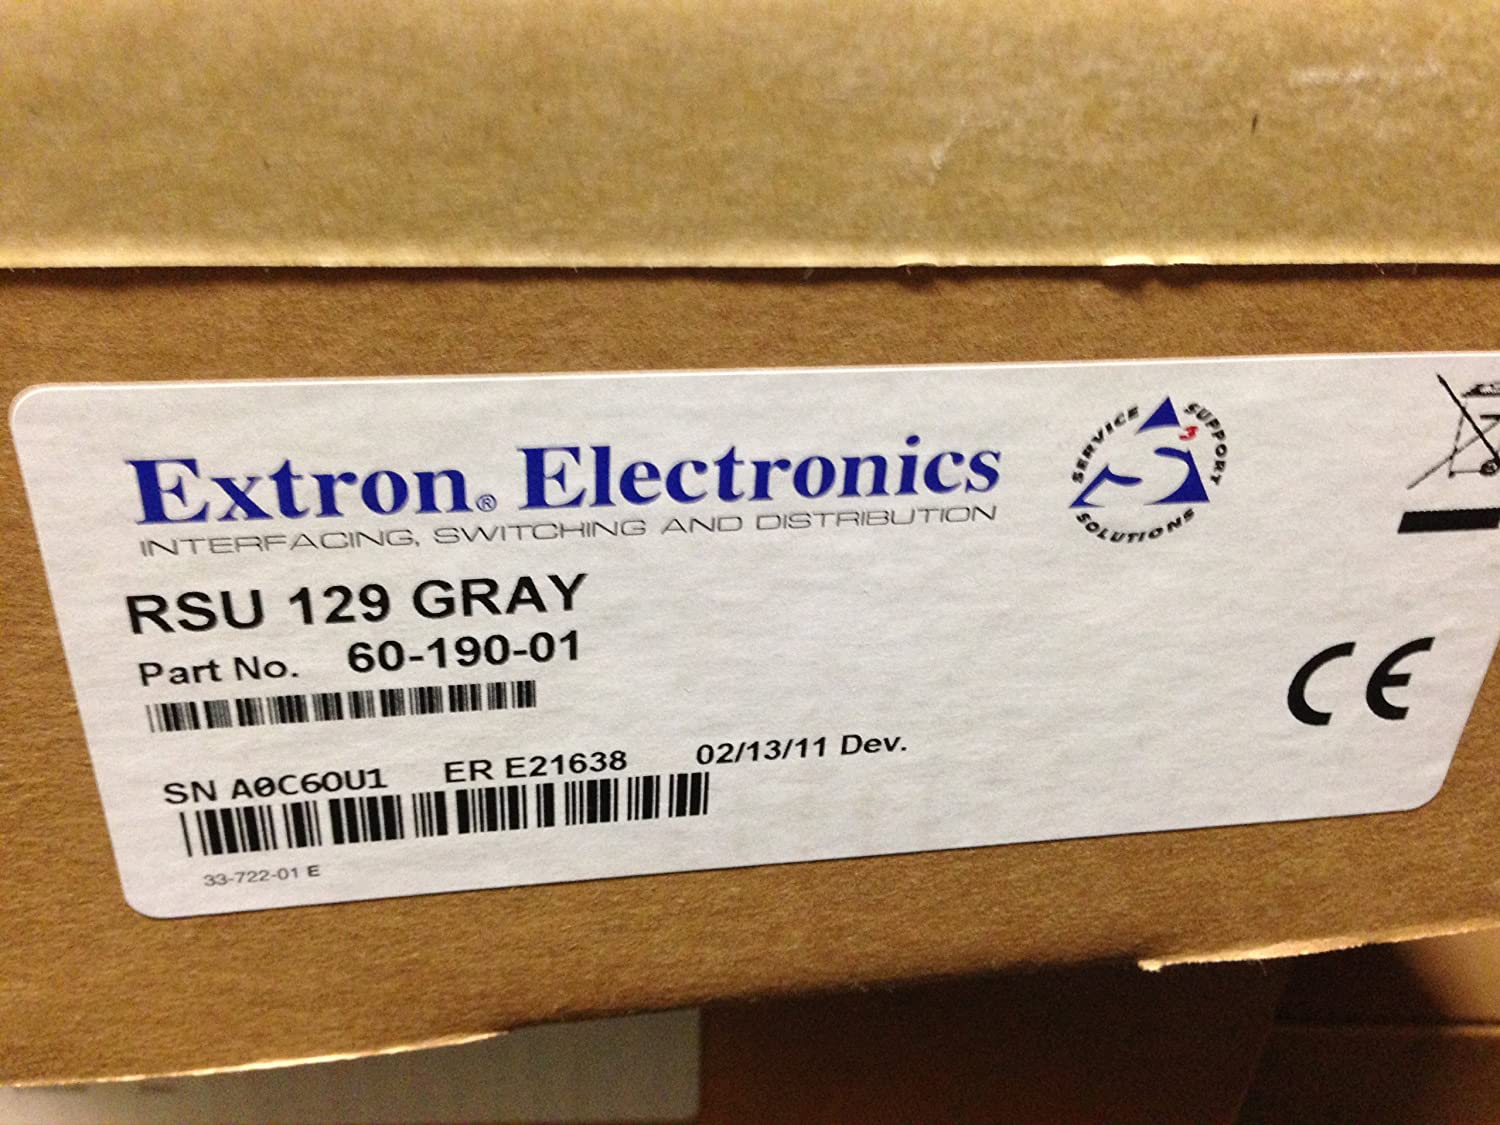 Extron RSU 129 GRAY 60-190-01 Basic Rack Shelf